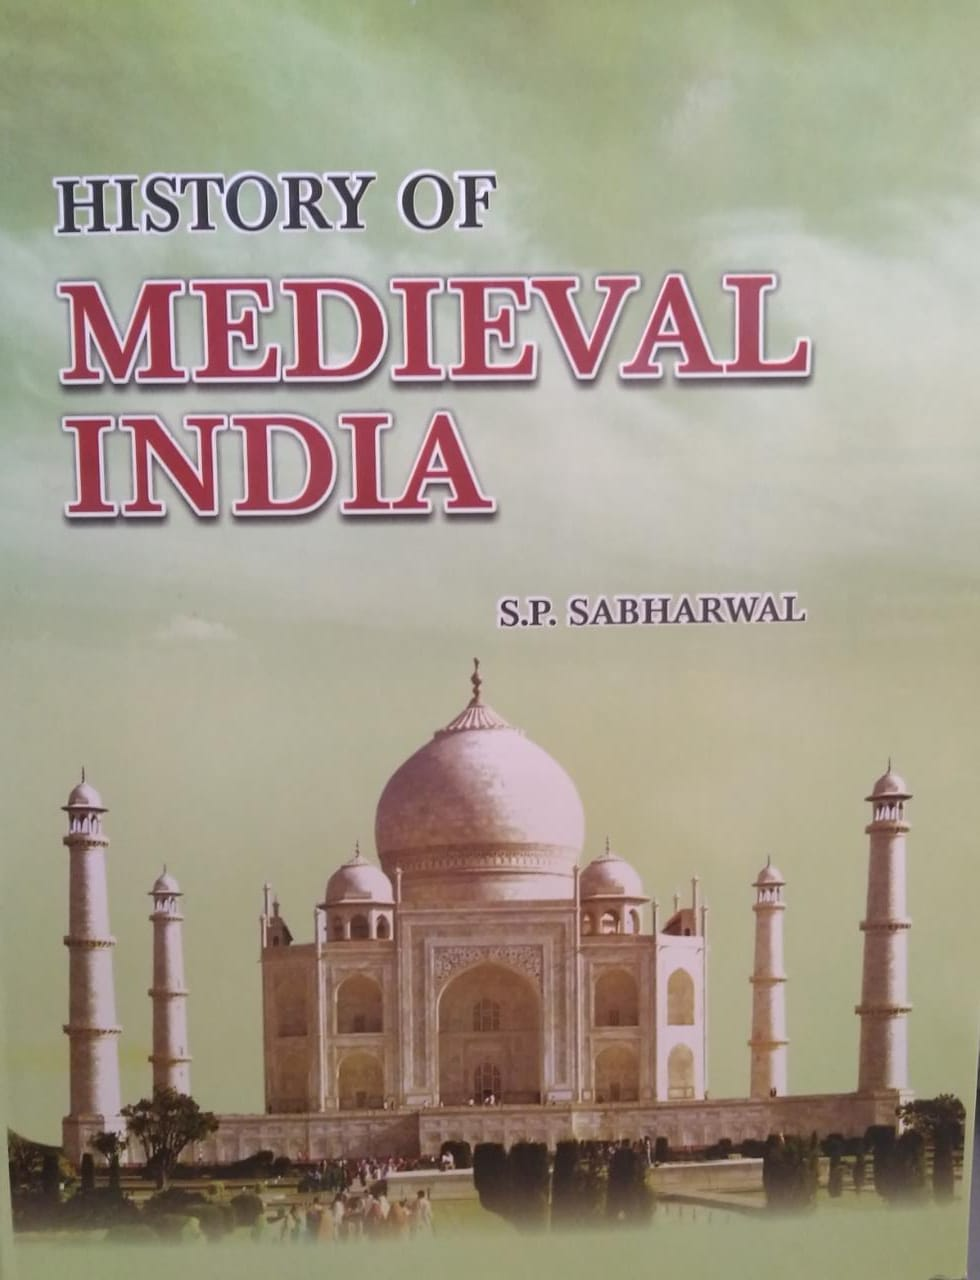 History of Medieval India B.A. Sem. II (P.U.) by S.P. Sabharwal Edition 2021